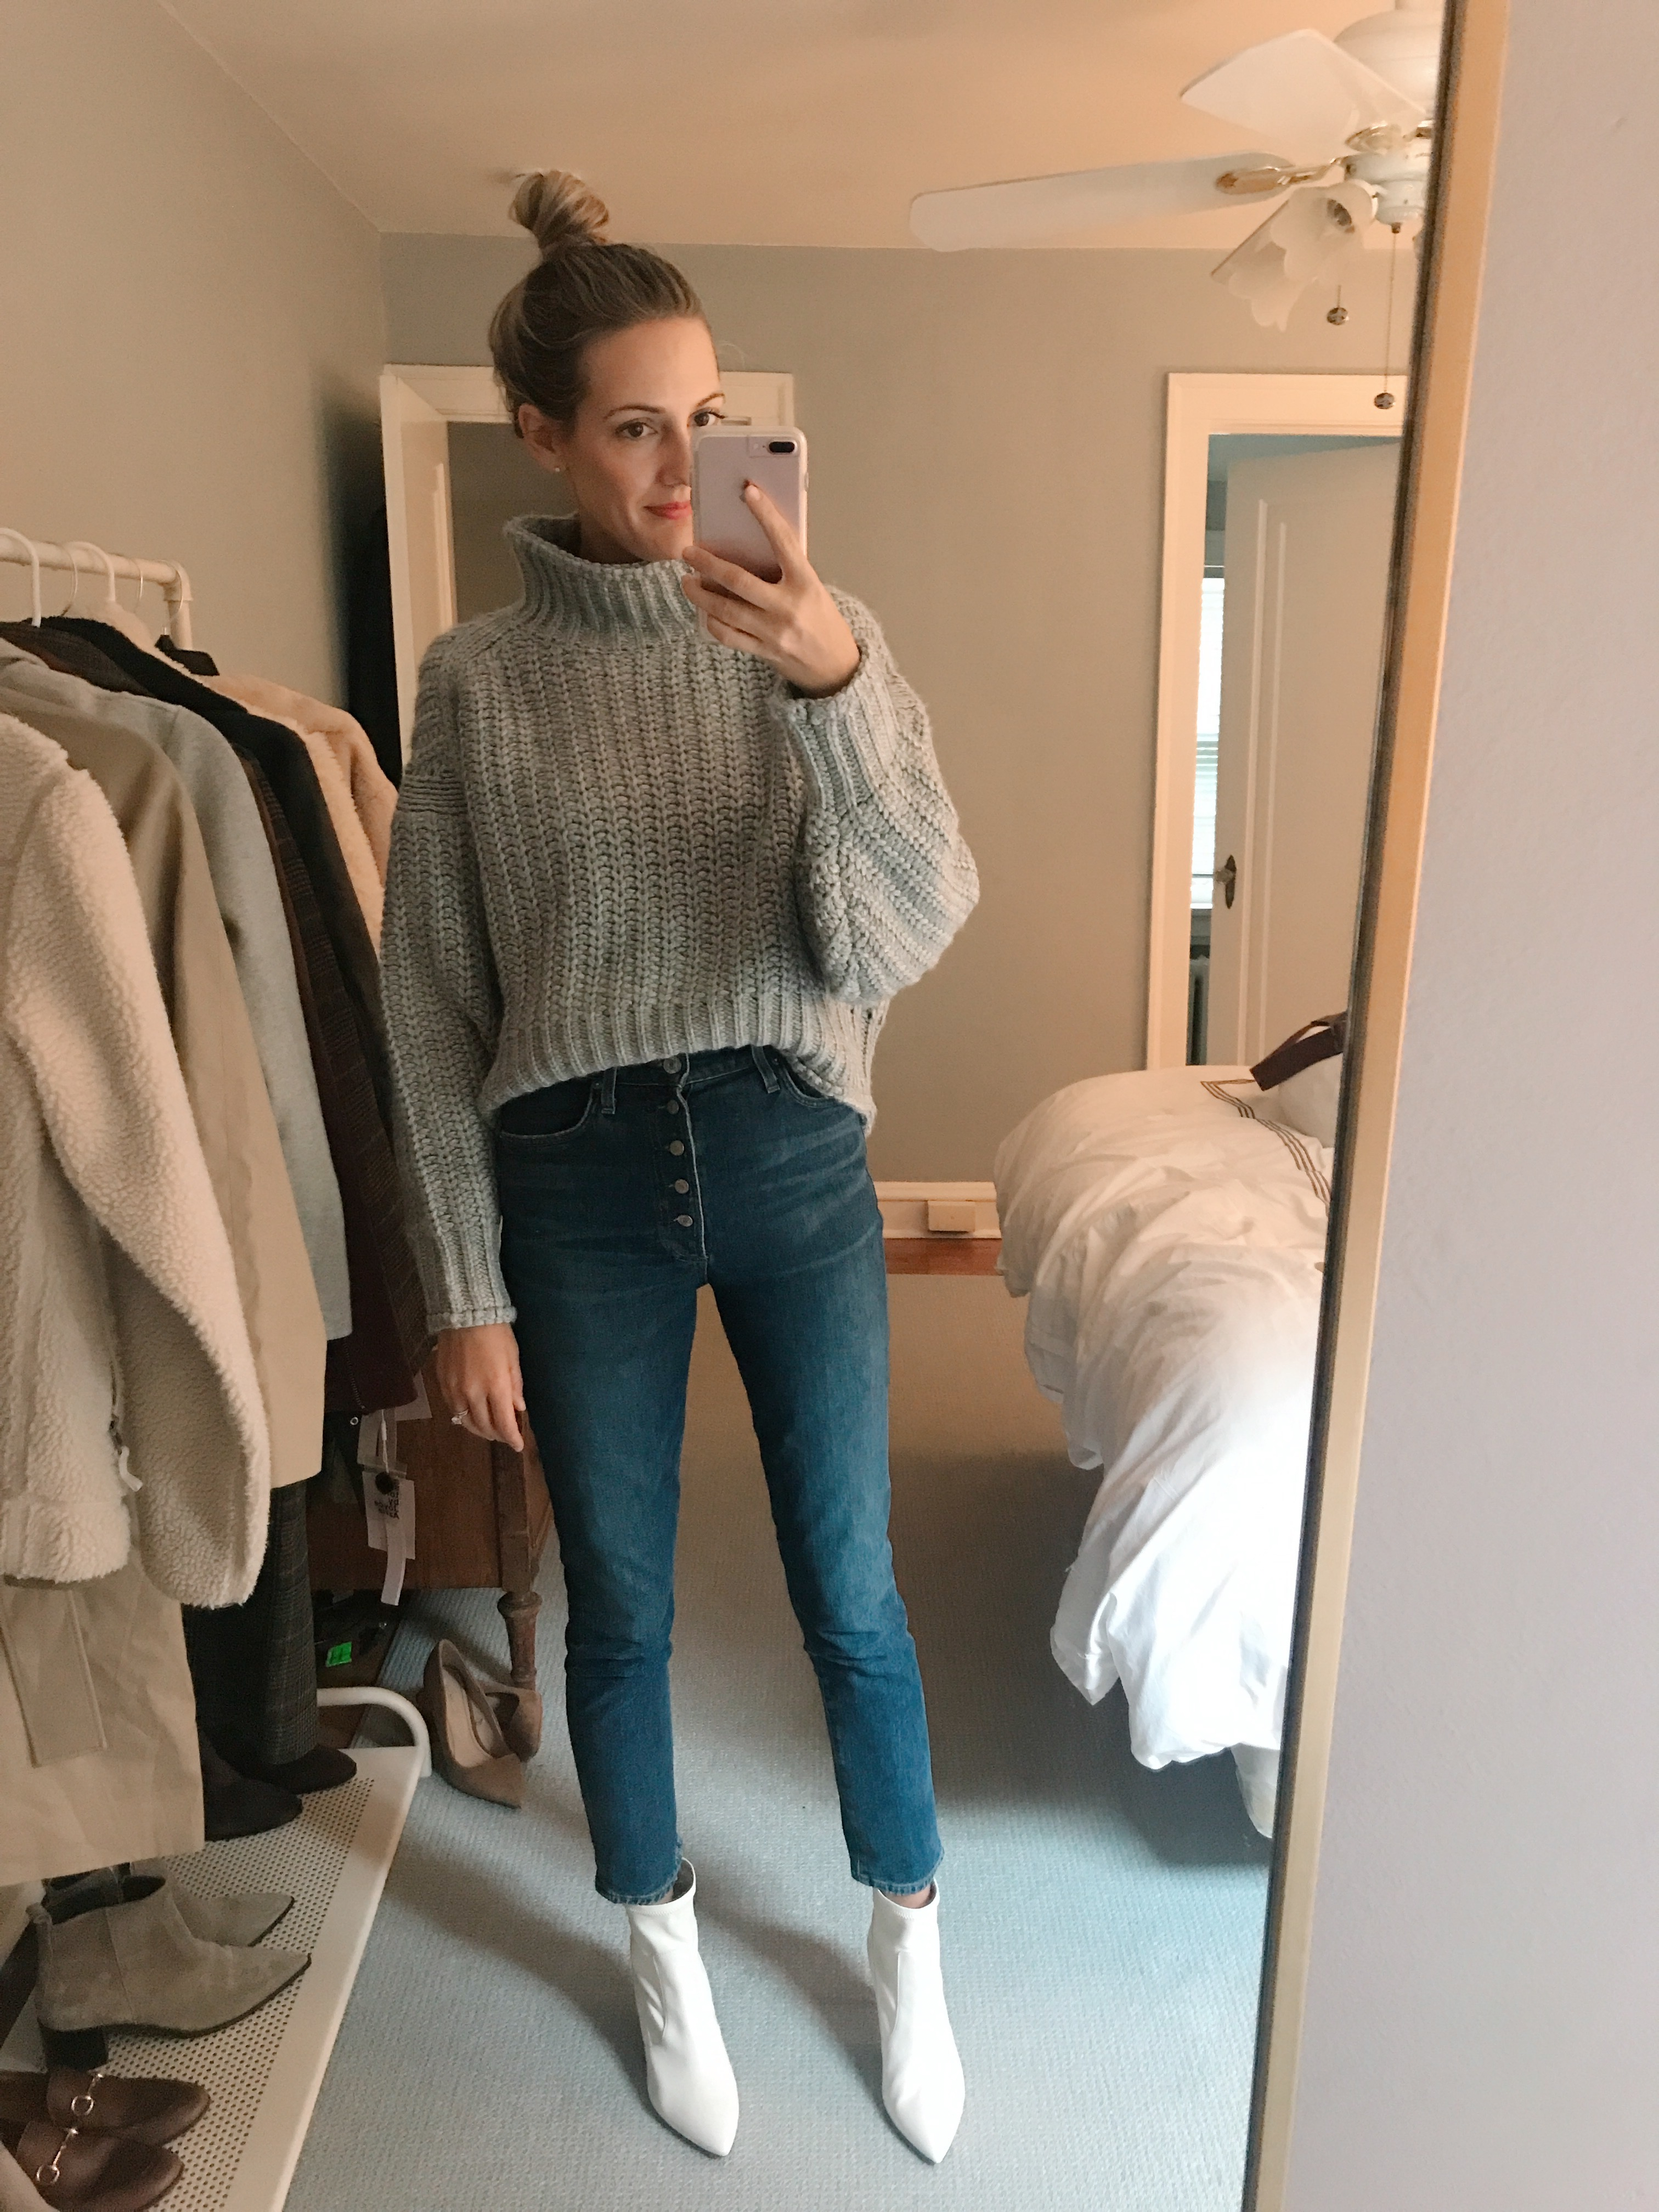 h&m inexpensive sweaters #ootd